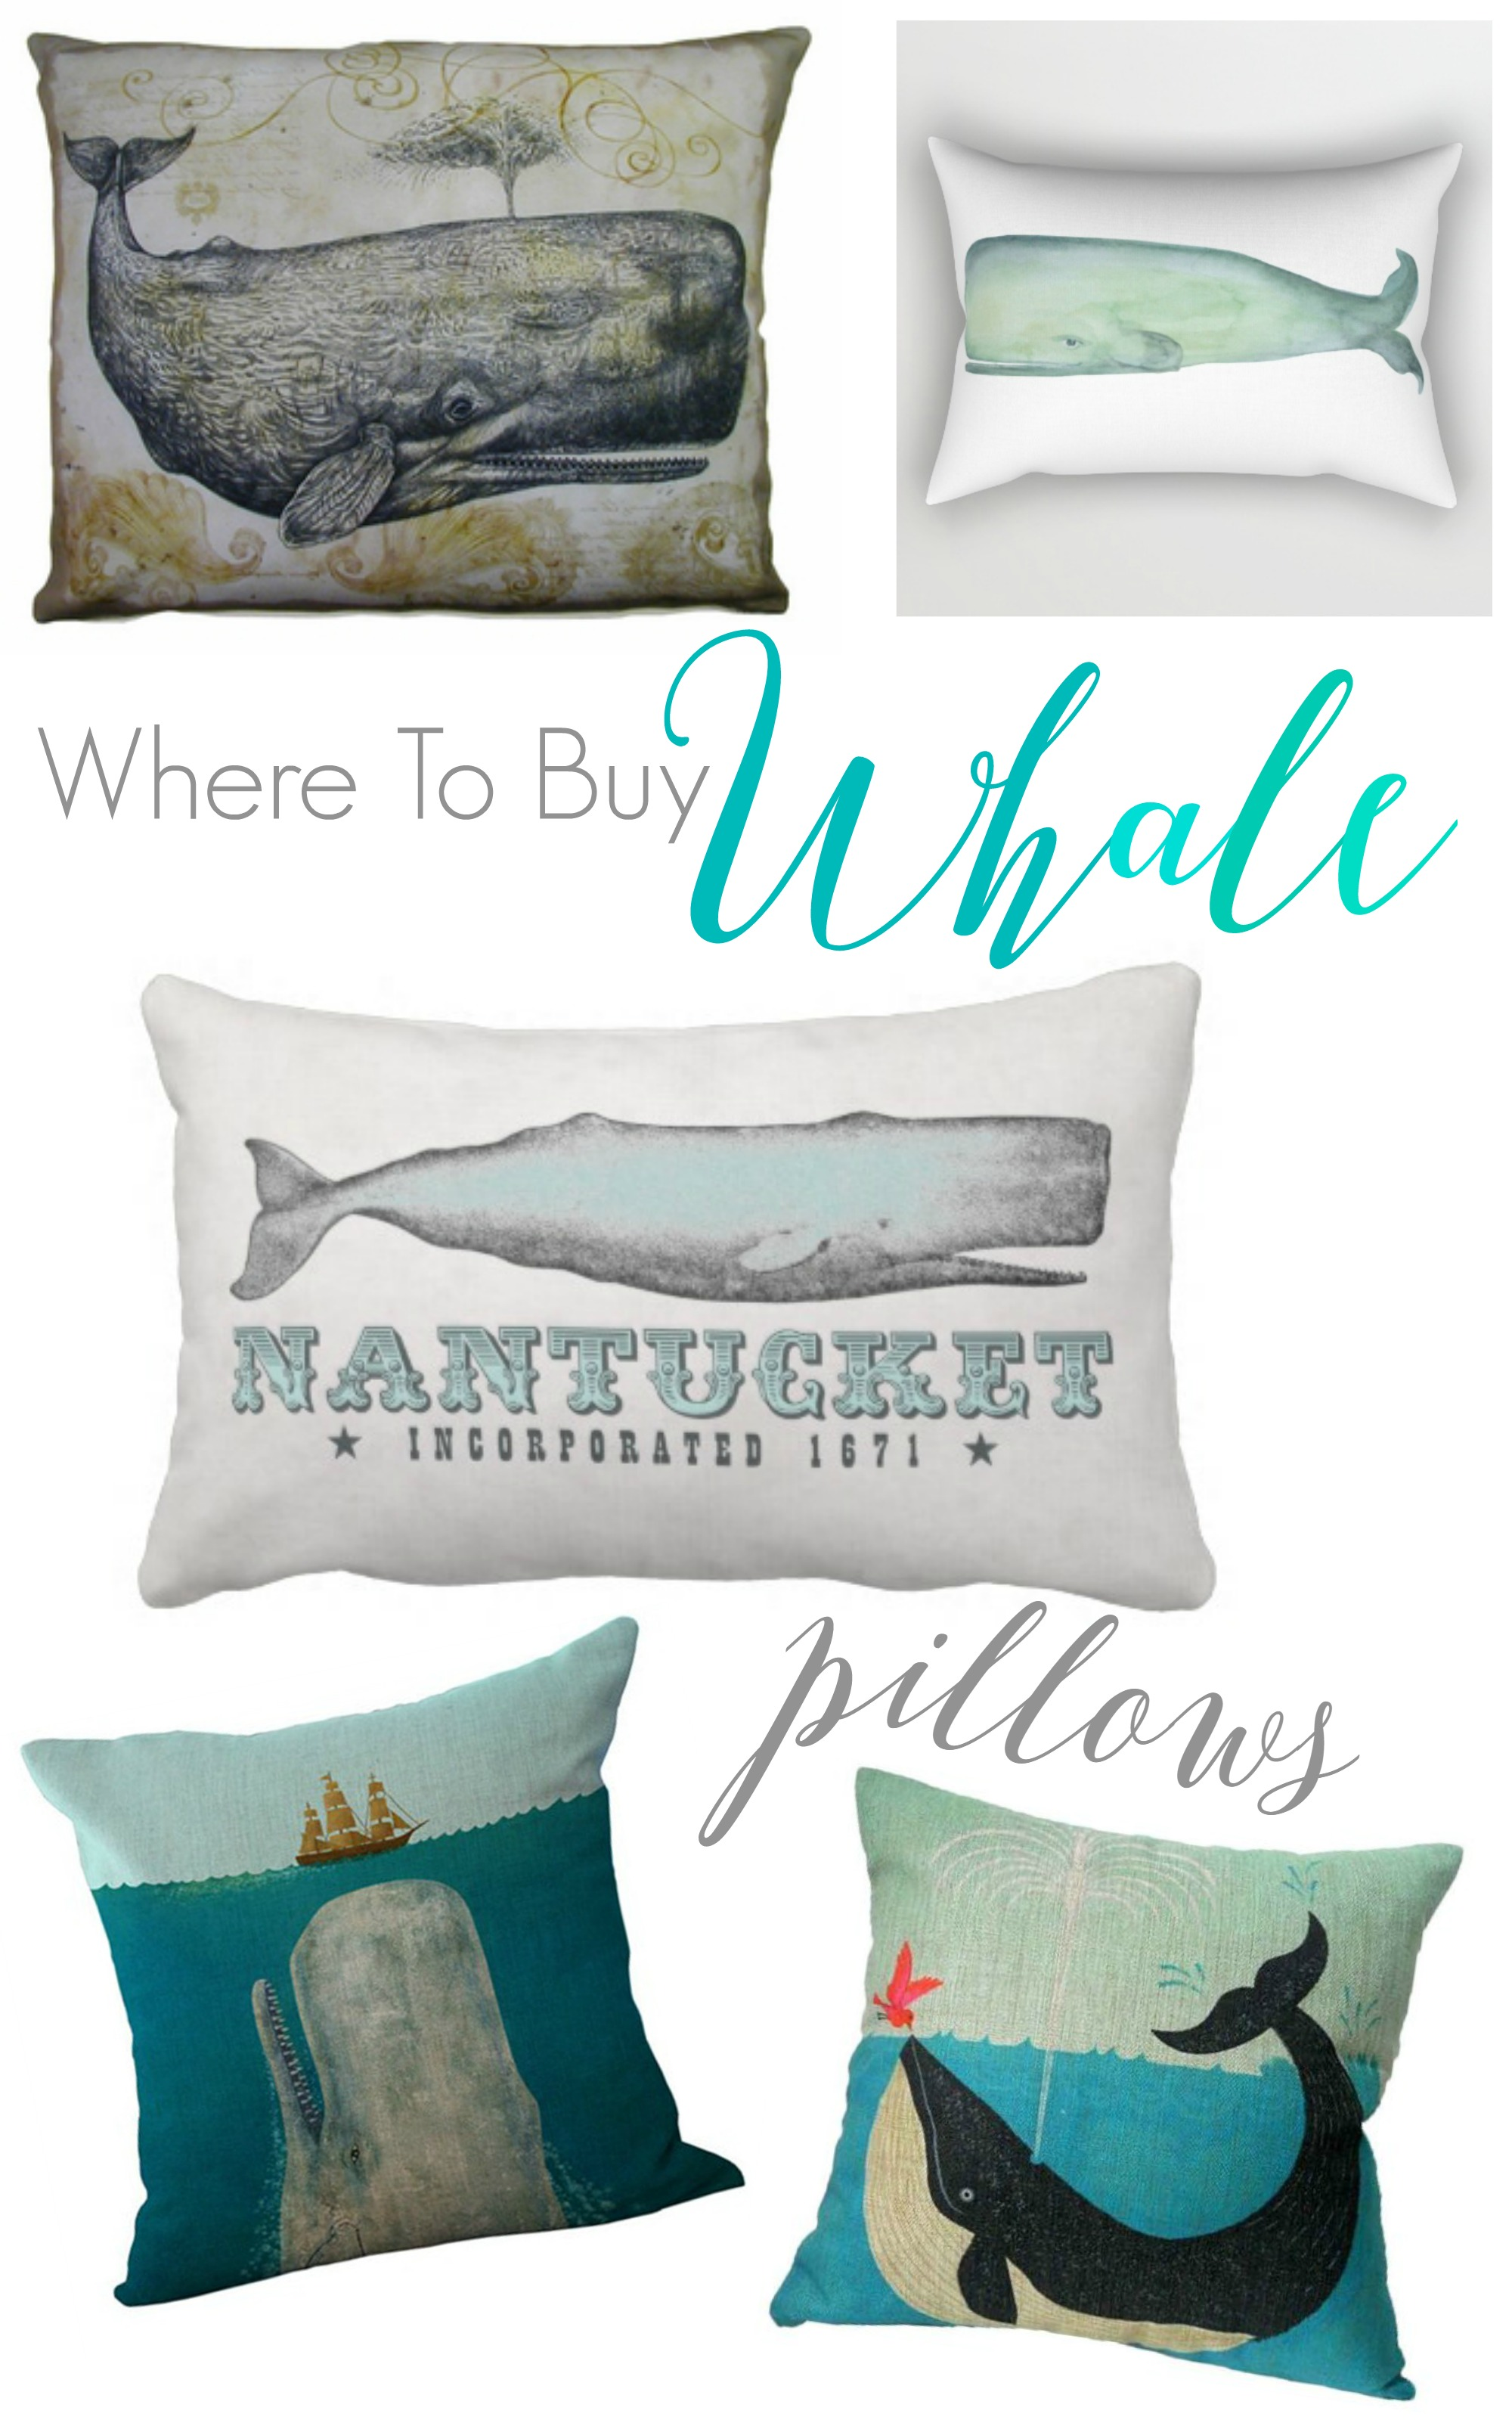 where to buy whale pillows